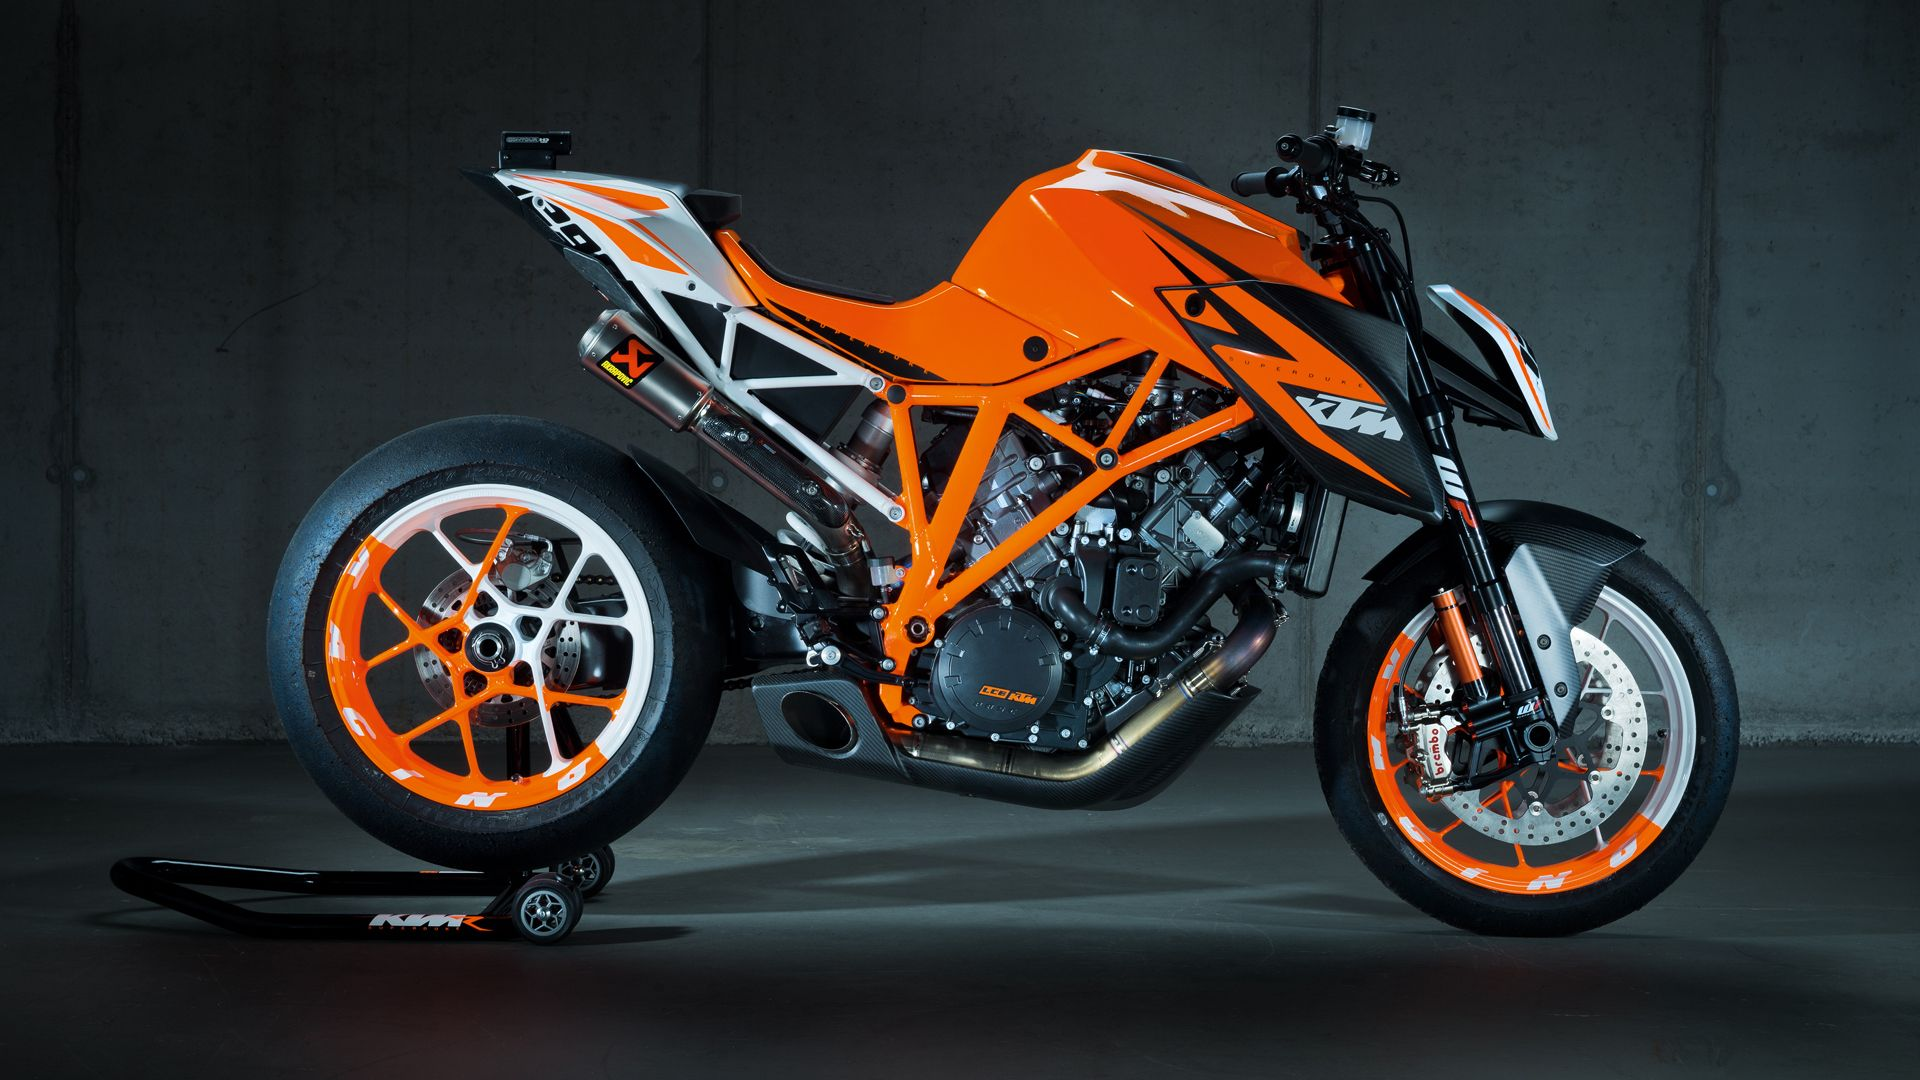 Ktm motorcycles hd wallpapers free wallaper downloads ktm sport - Motorbike Wallpaper Ktm Duke Wallpapers High Quality With Hd 1600 900 Duke Wallpapers 41 Wallpapers Adorable Wallpapers Wallpapers Pinterest Ktm